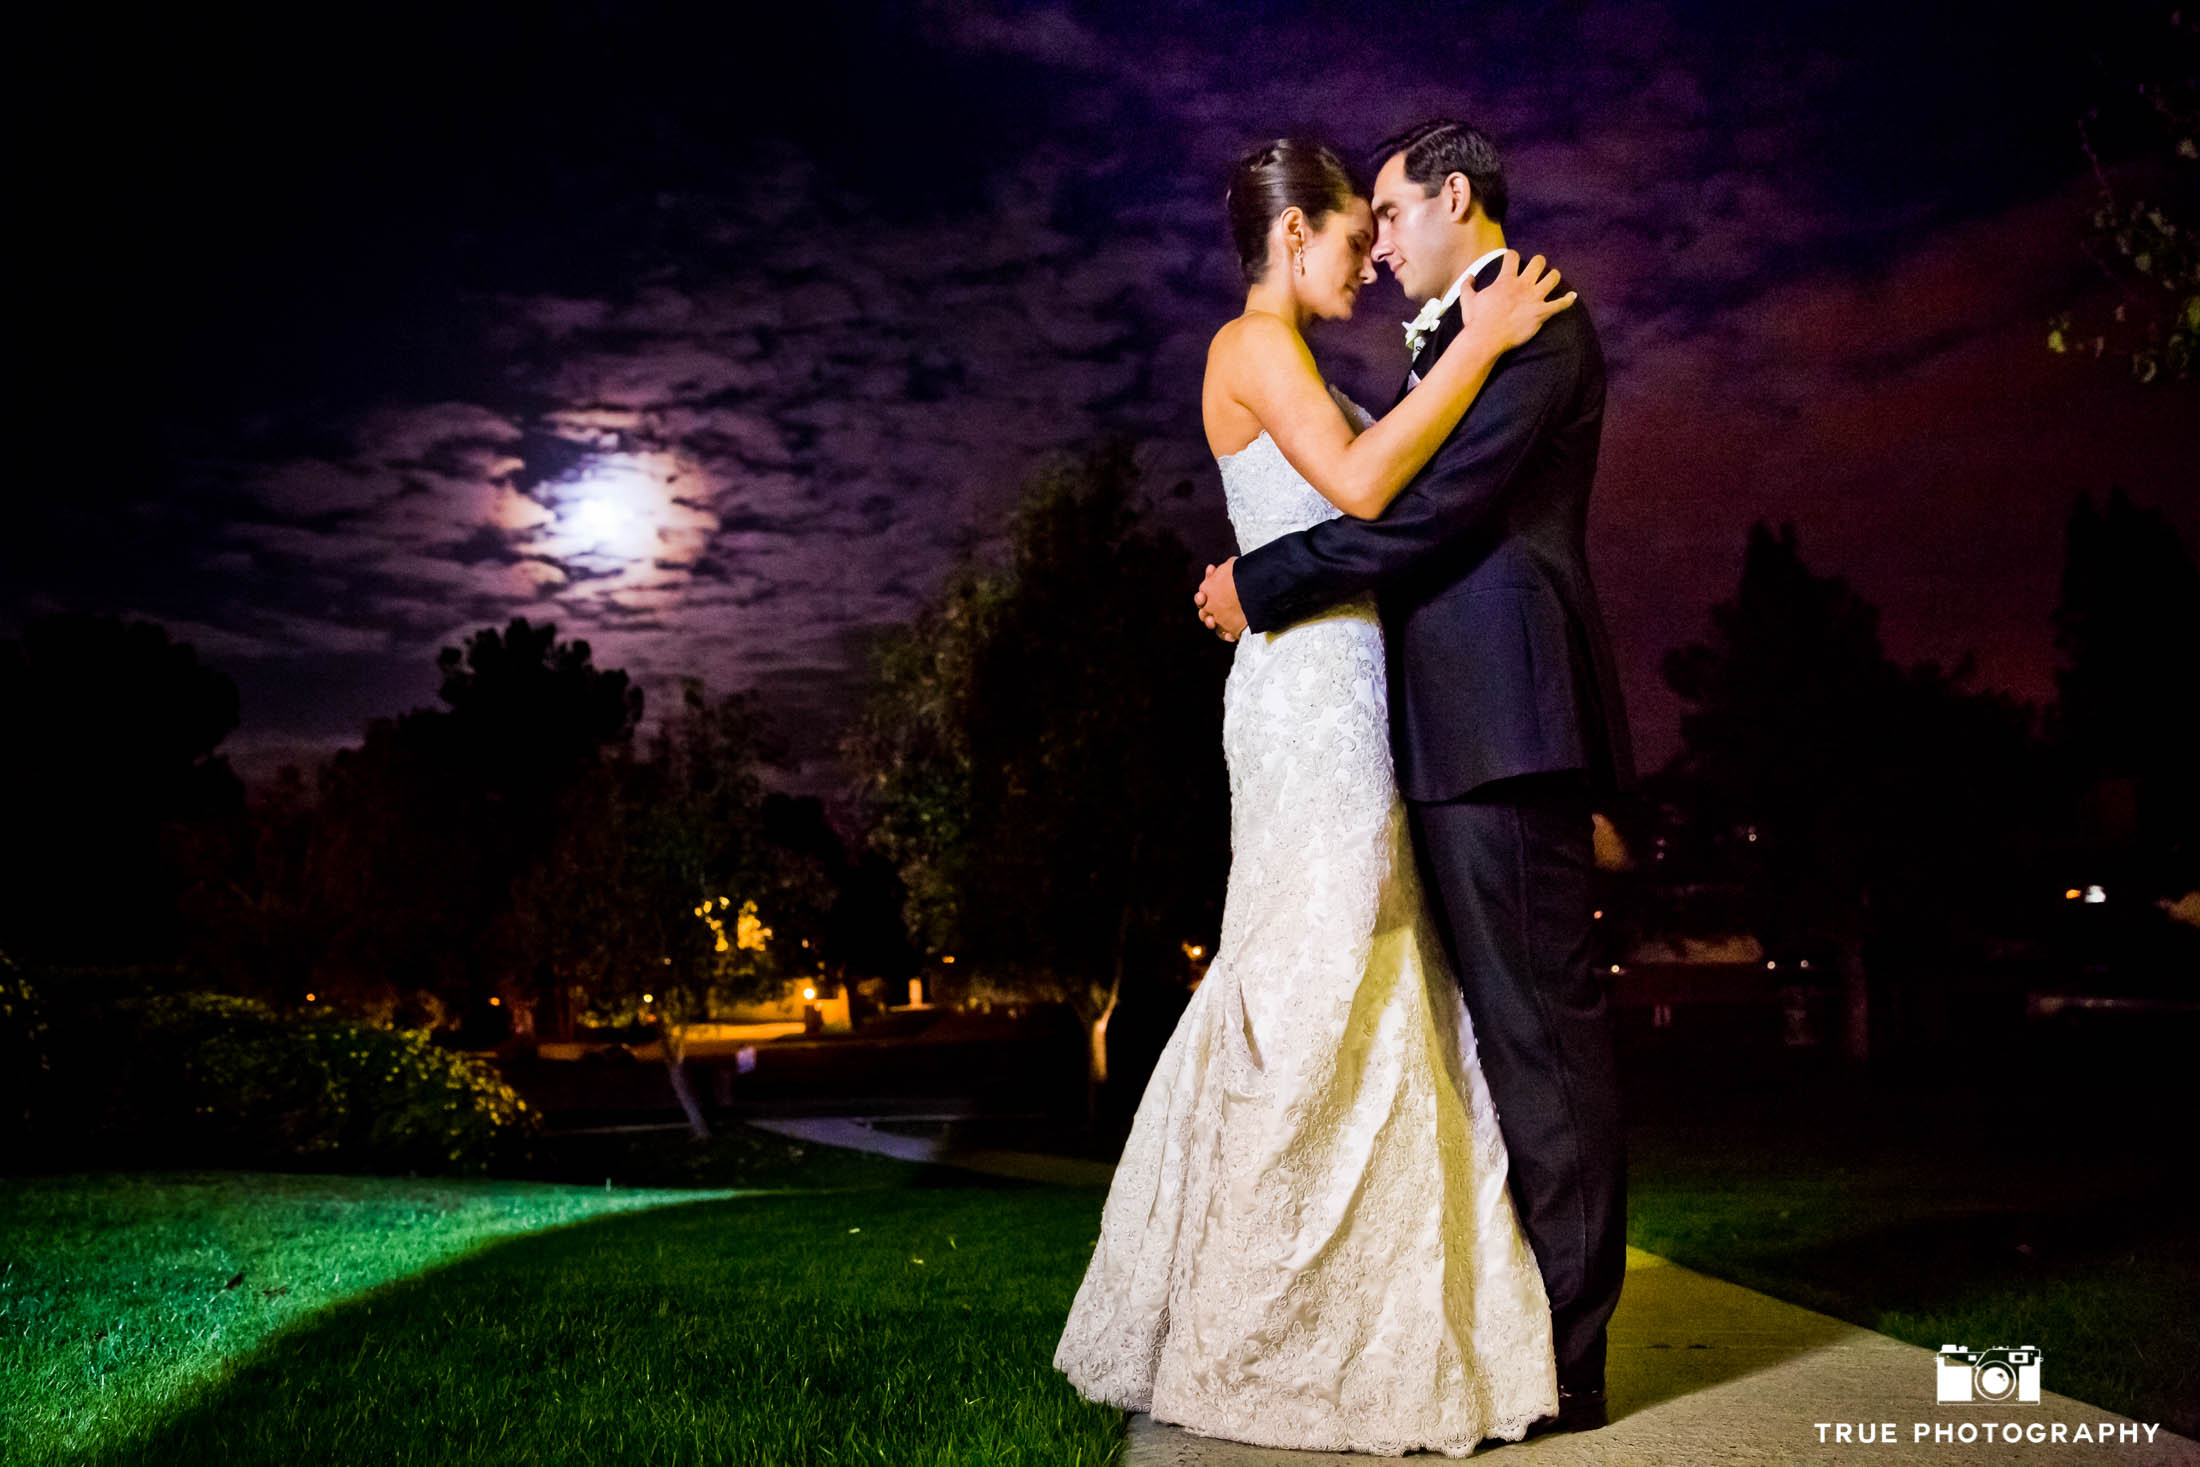 Moon light bride and groom night shot